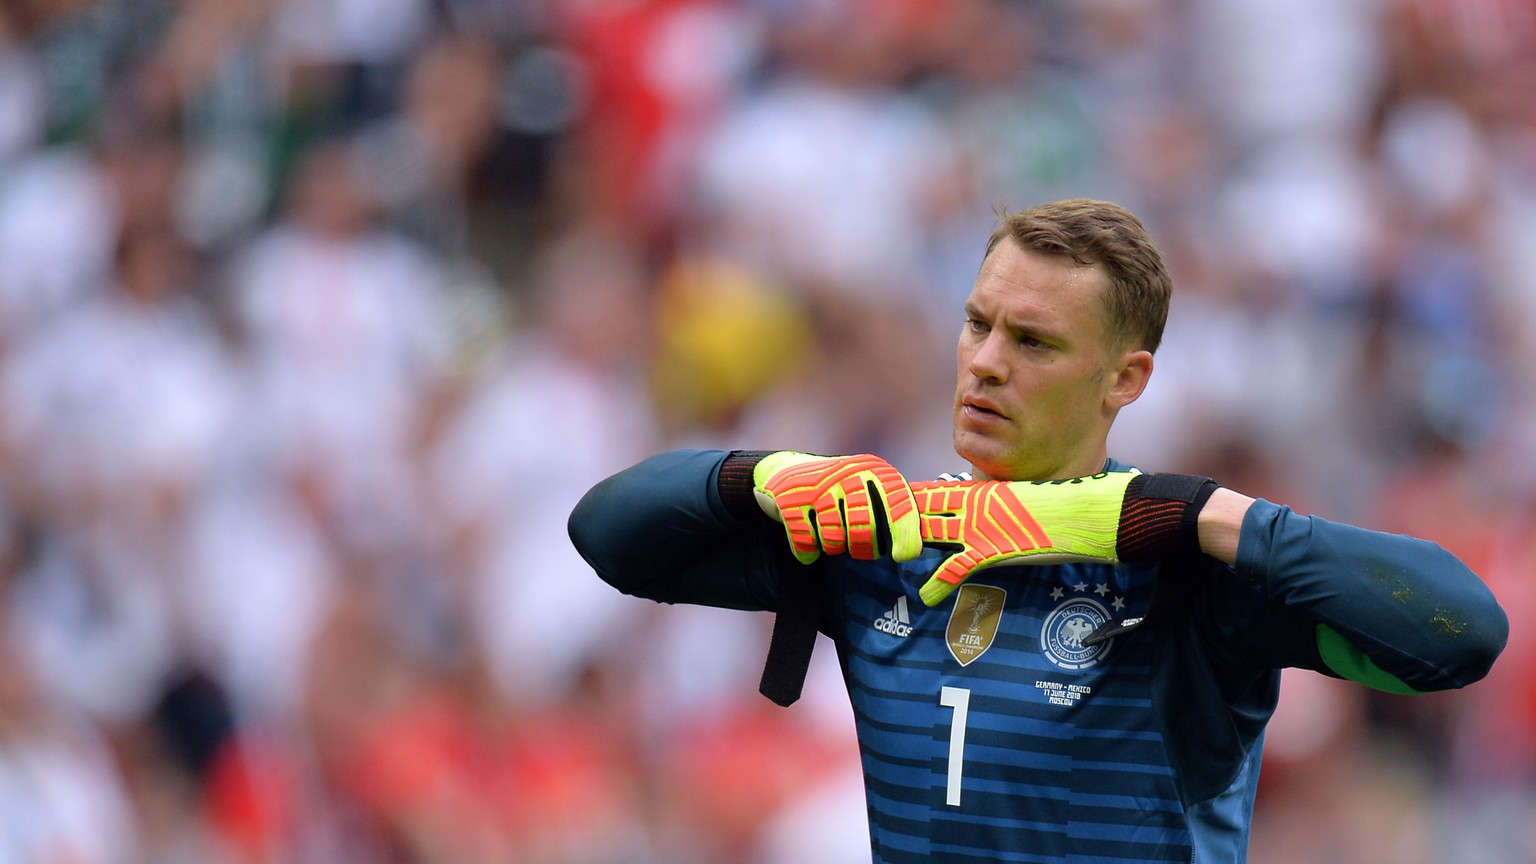 epa06816237 Goalkeeper Manuel Neuer of Germany reacts during the FIFA World Cup 2018 group F preliminary round soccer match between Germany and Mexico in Moscow, Russia, 17 June 2018.